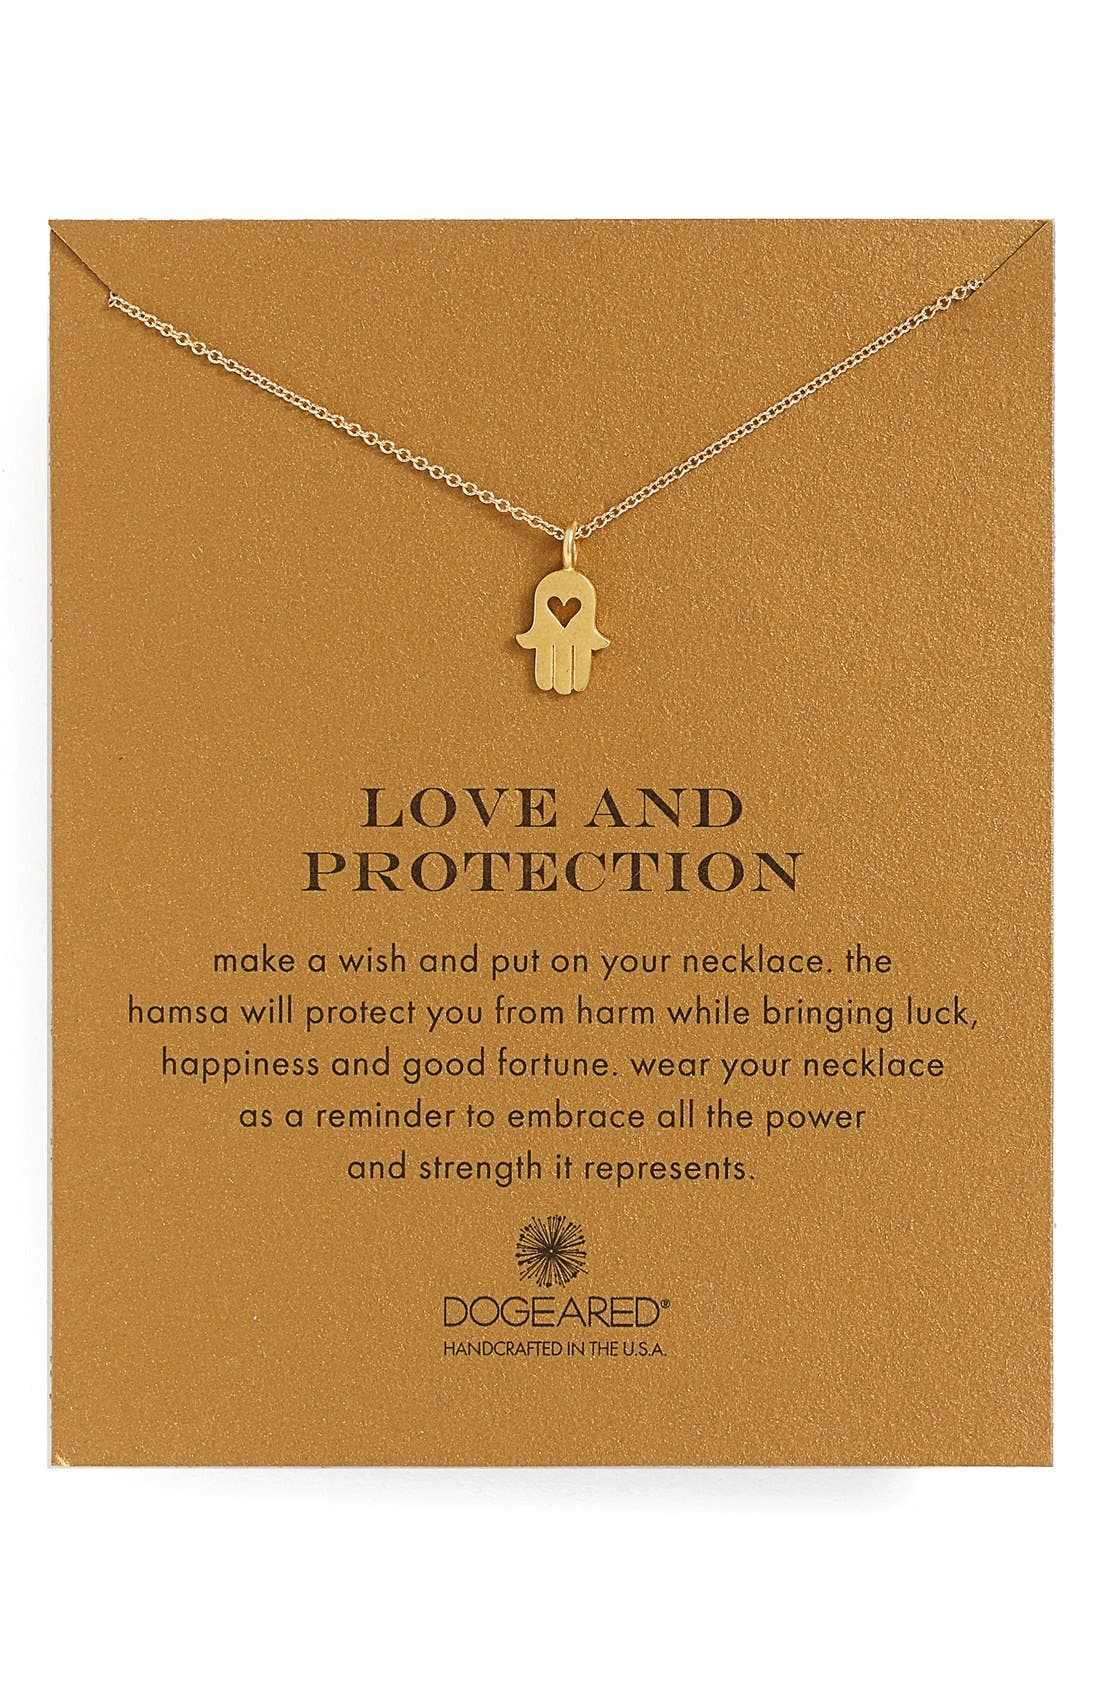 Alternate Image 1 Selected - Dogeared 'Love and Protection' Pendant Necklace